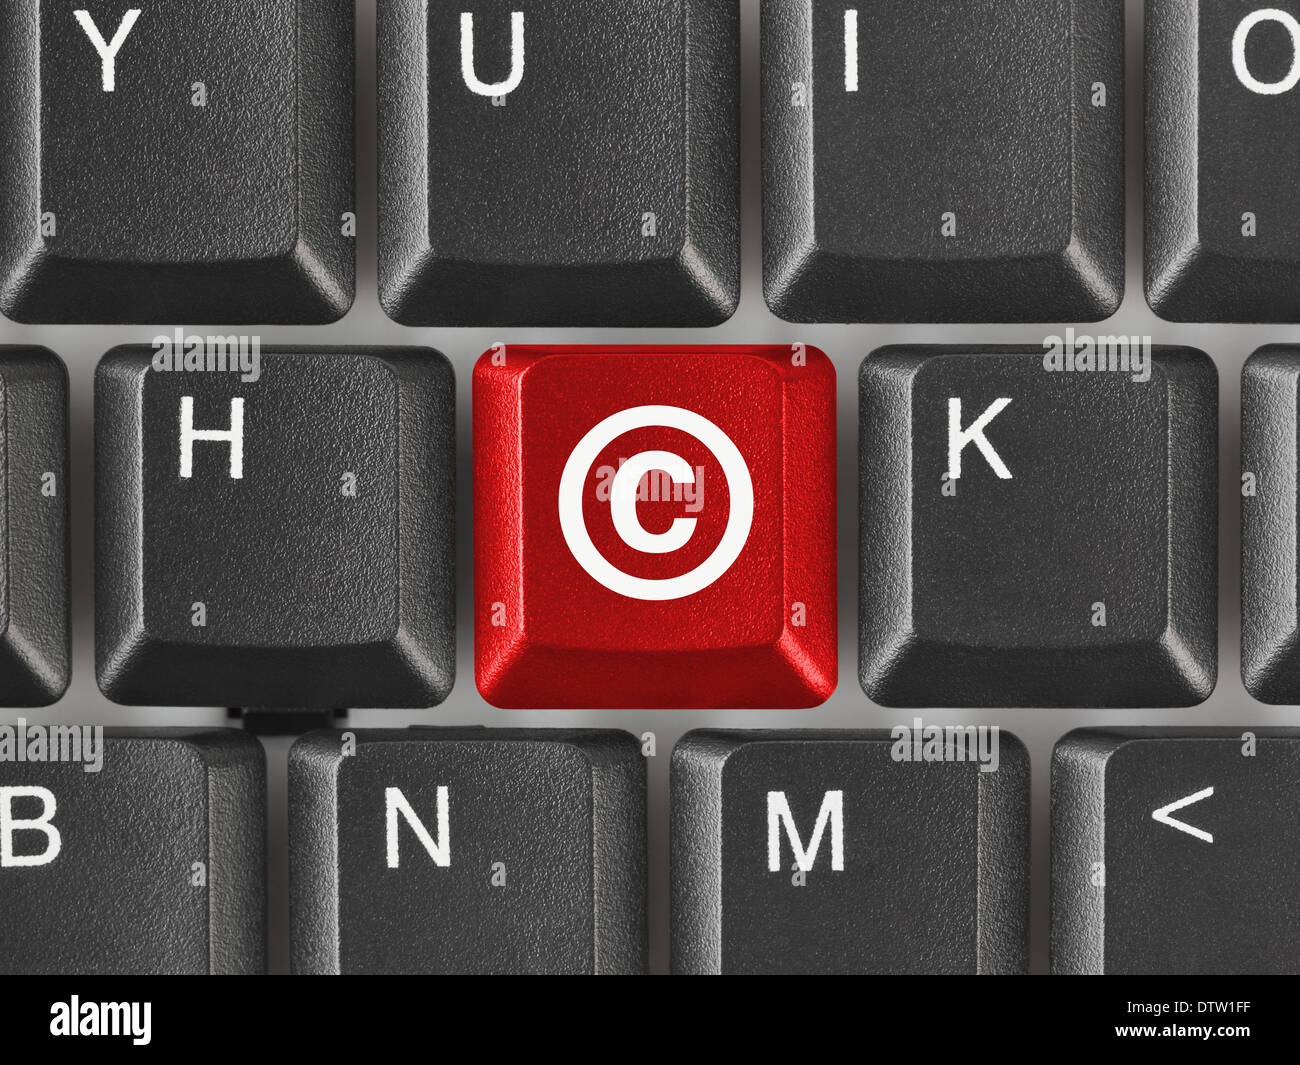 Computer keyboard with copyright symbol stock photo royalty free computer keyboard with copyright symbol biocorpaavc Gallery